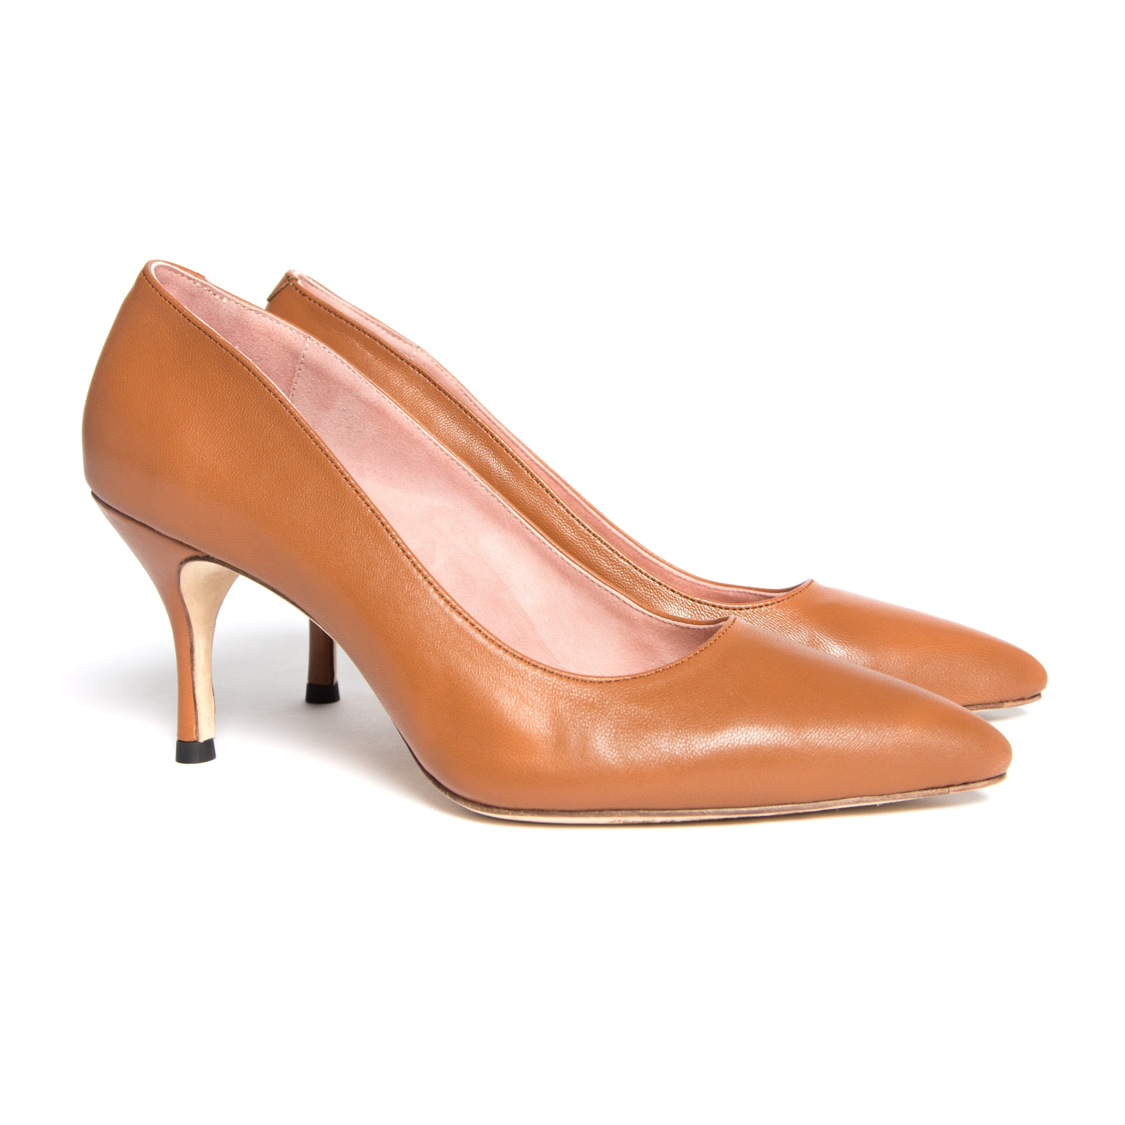 ALLY Courageous Caramel Leather Pump